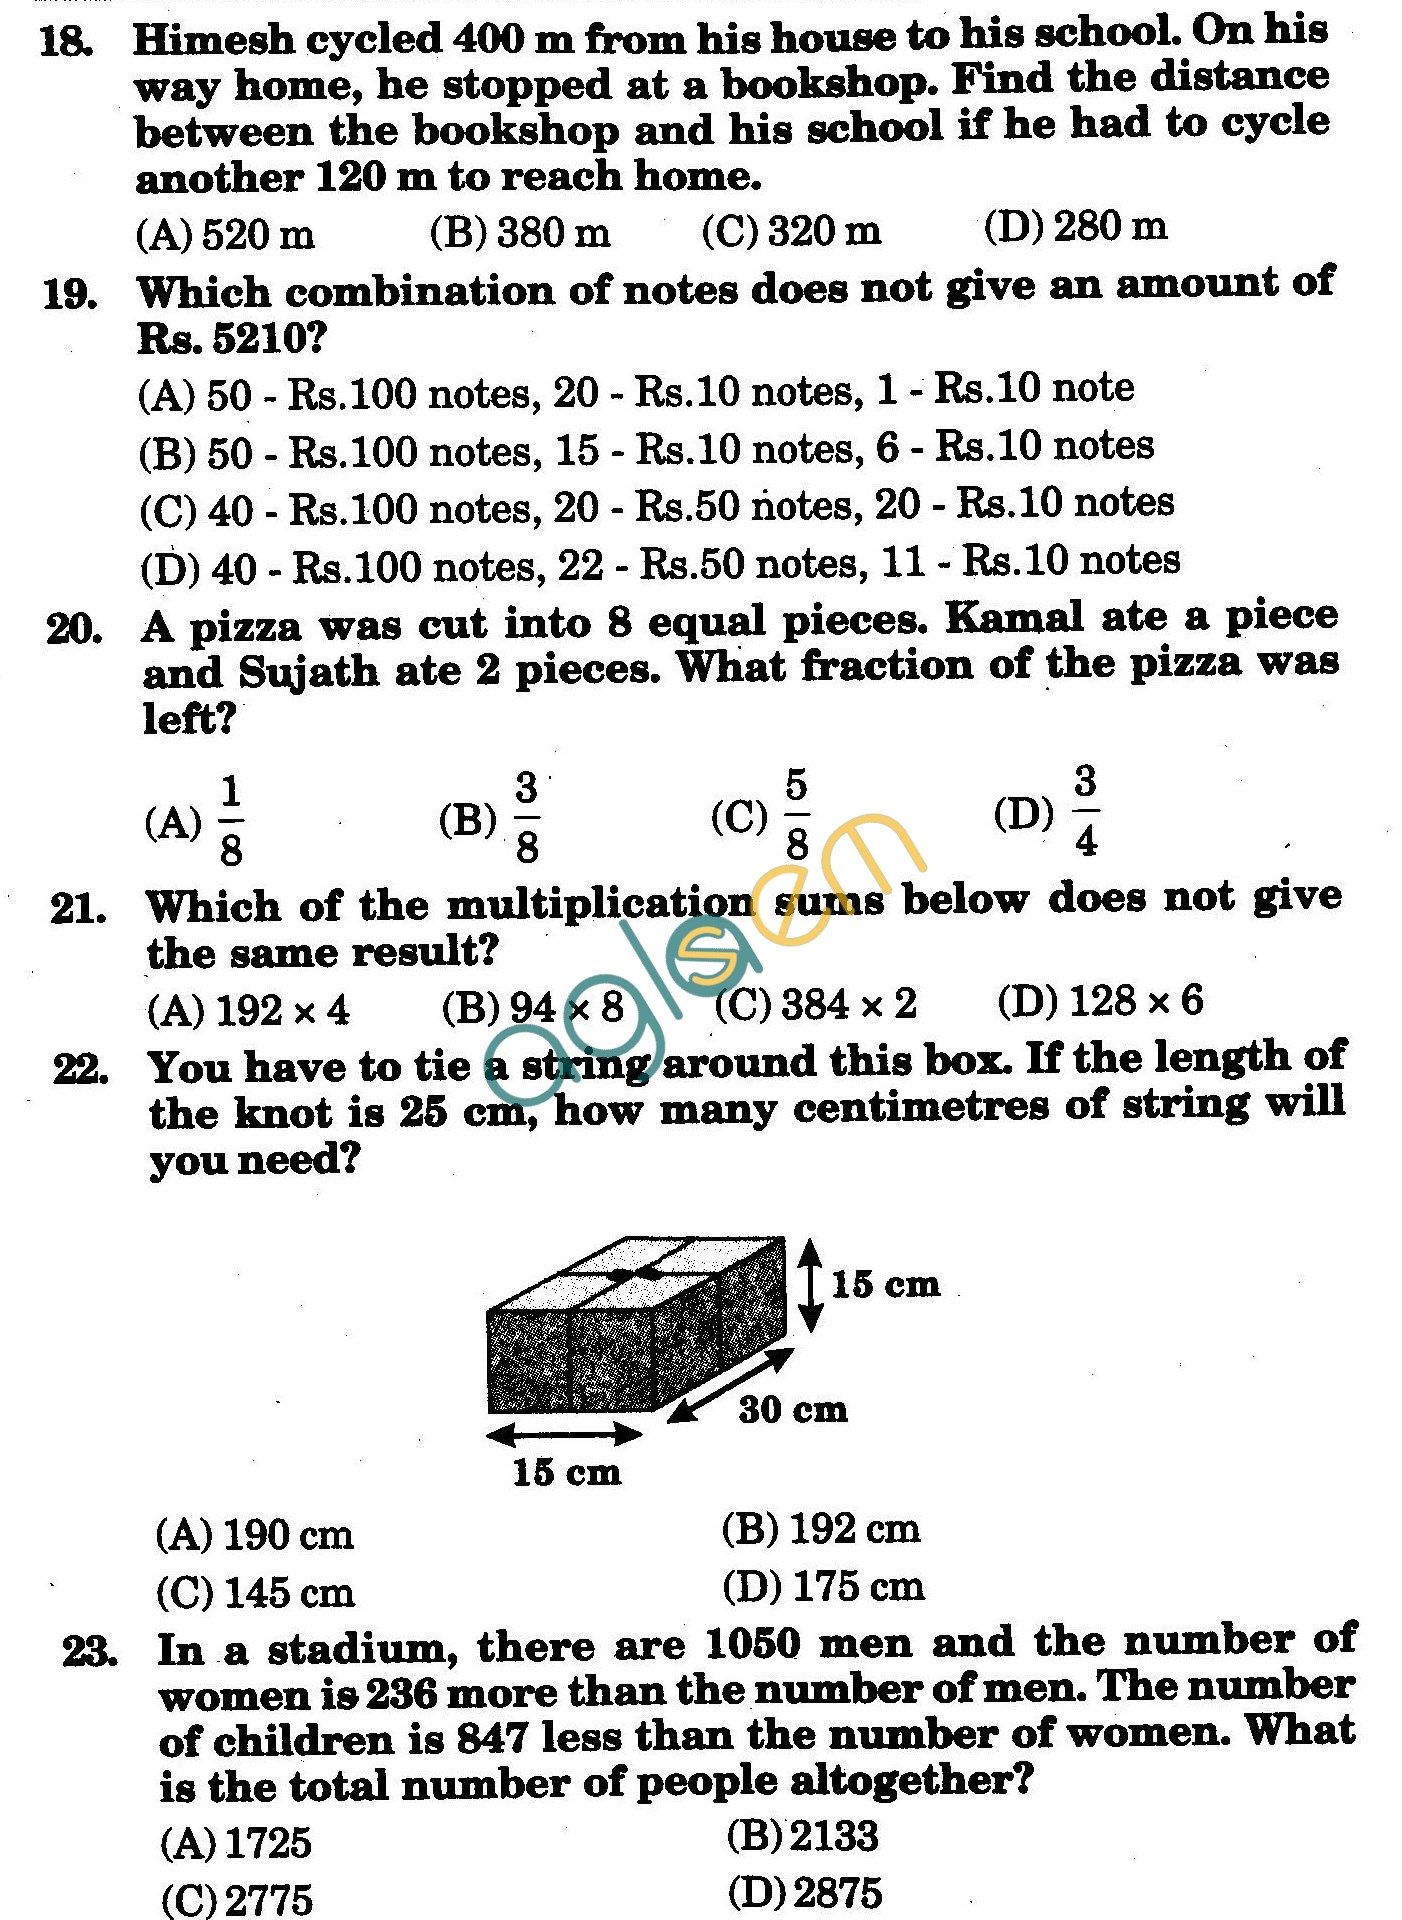 NSTSE 2010 Class IV Question Paper with Answers - Mathematics